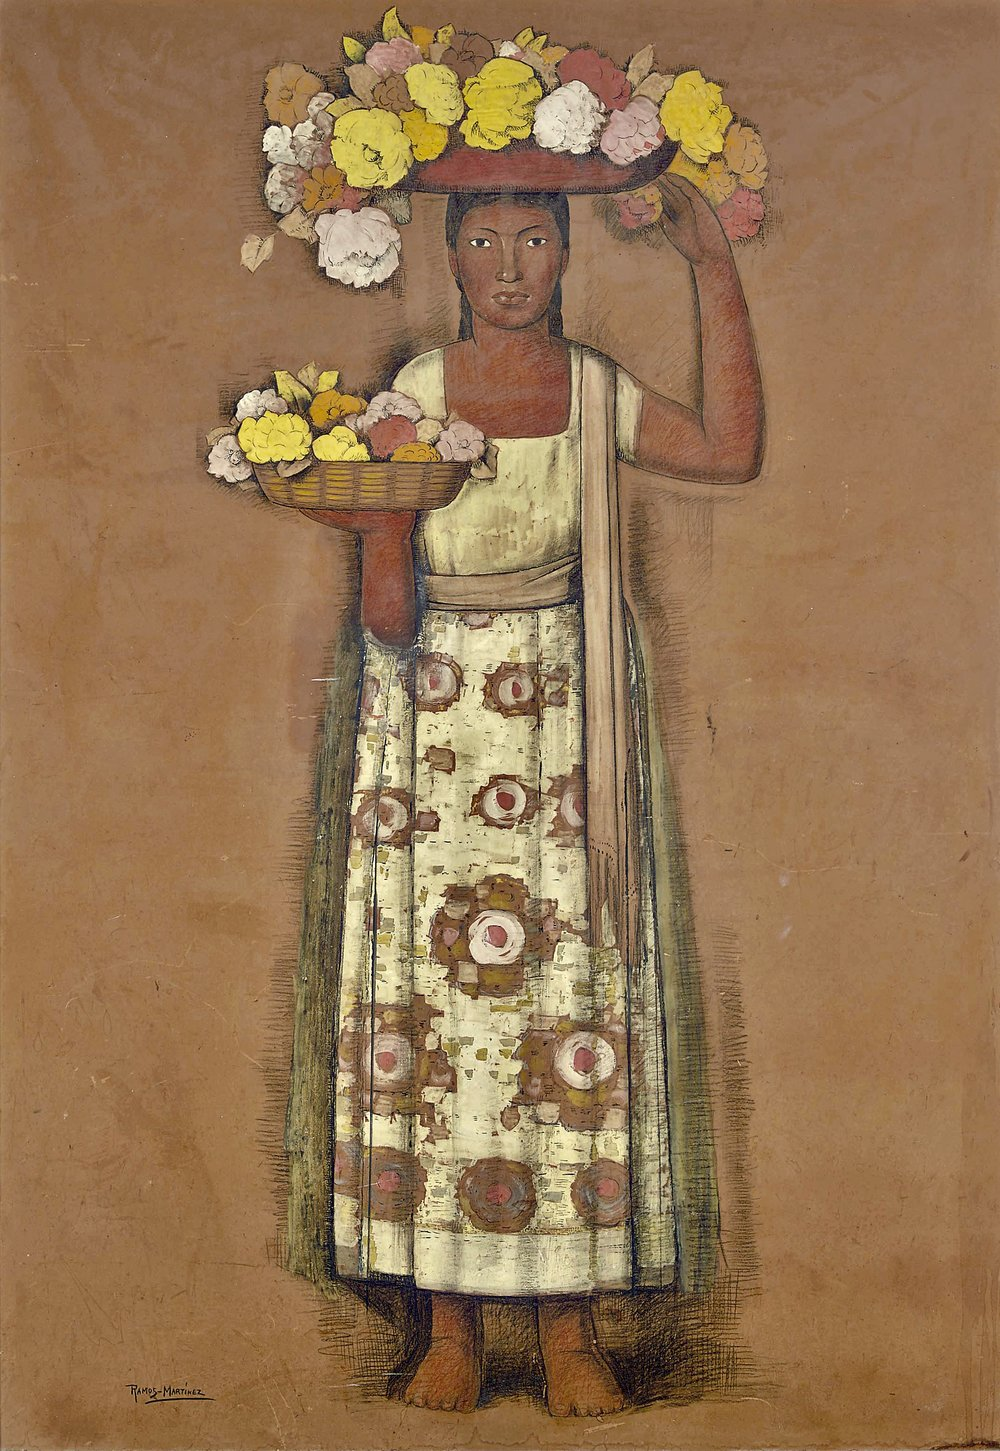 Sin Título - Mujer Con Flores / Untitled - Woman with Flowers  ca. 1935 gouache, ink, crayon and graphite on board / aguada, tinta, crayon y grafito sobre tabla 67 x 47 inches; 170.2 x 119.4 centímetros Private collection